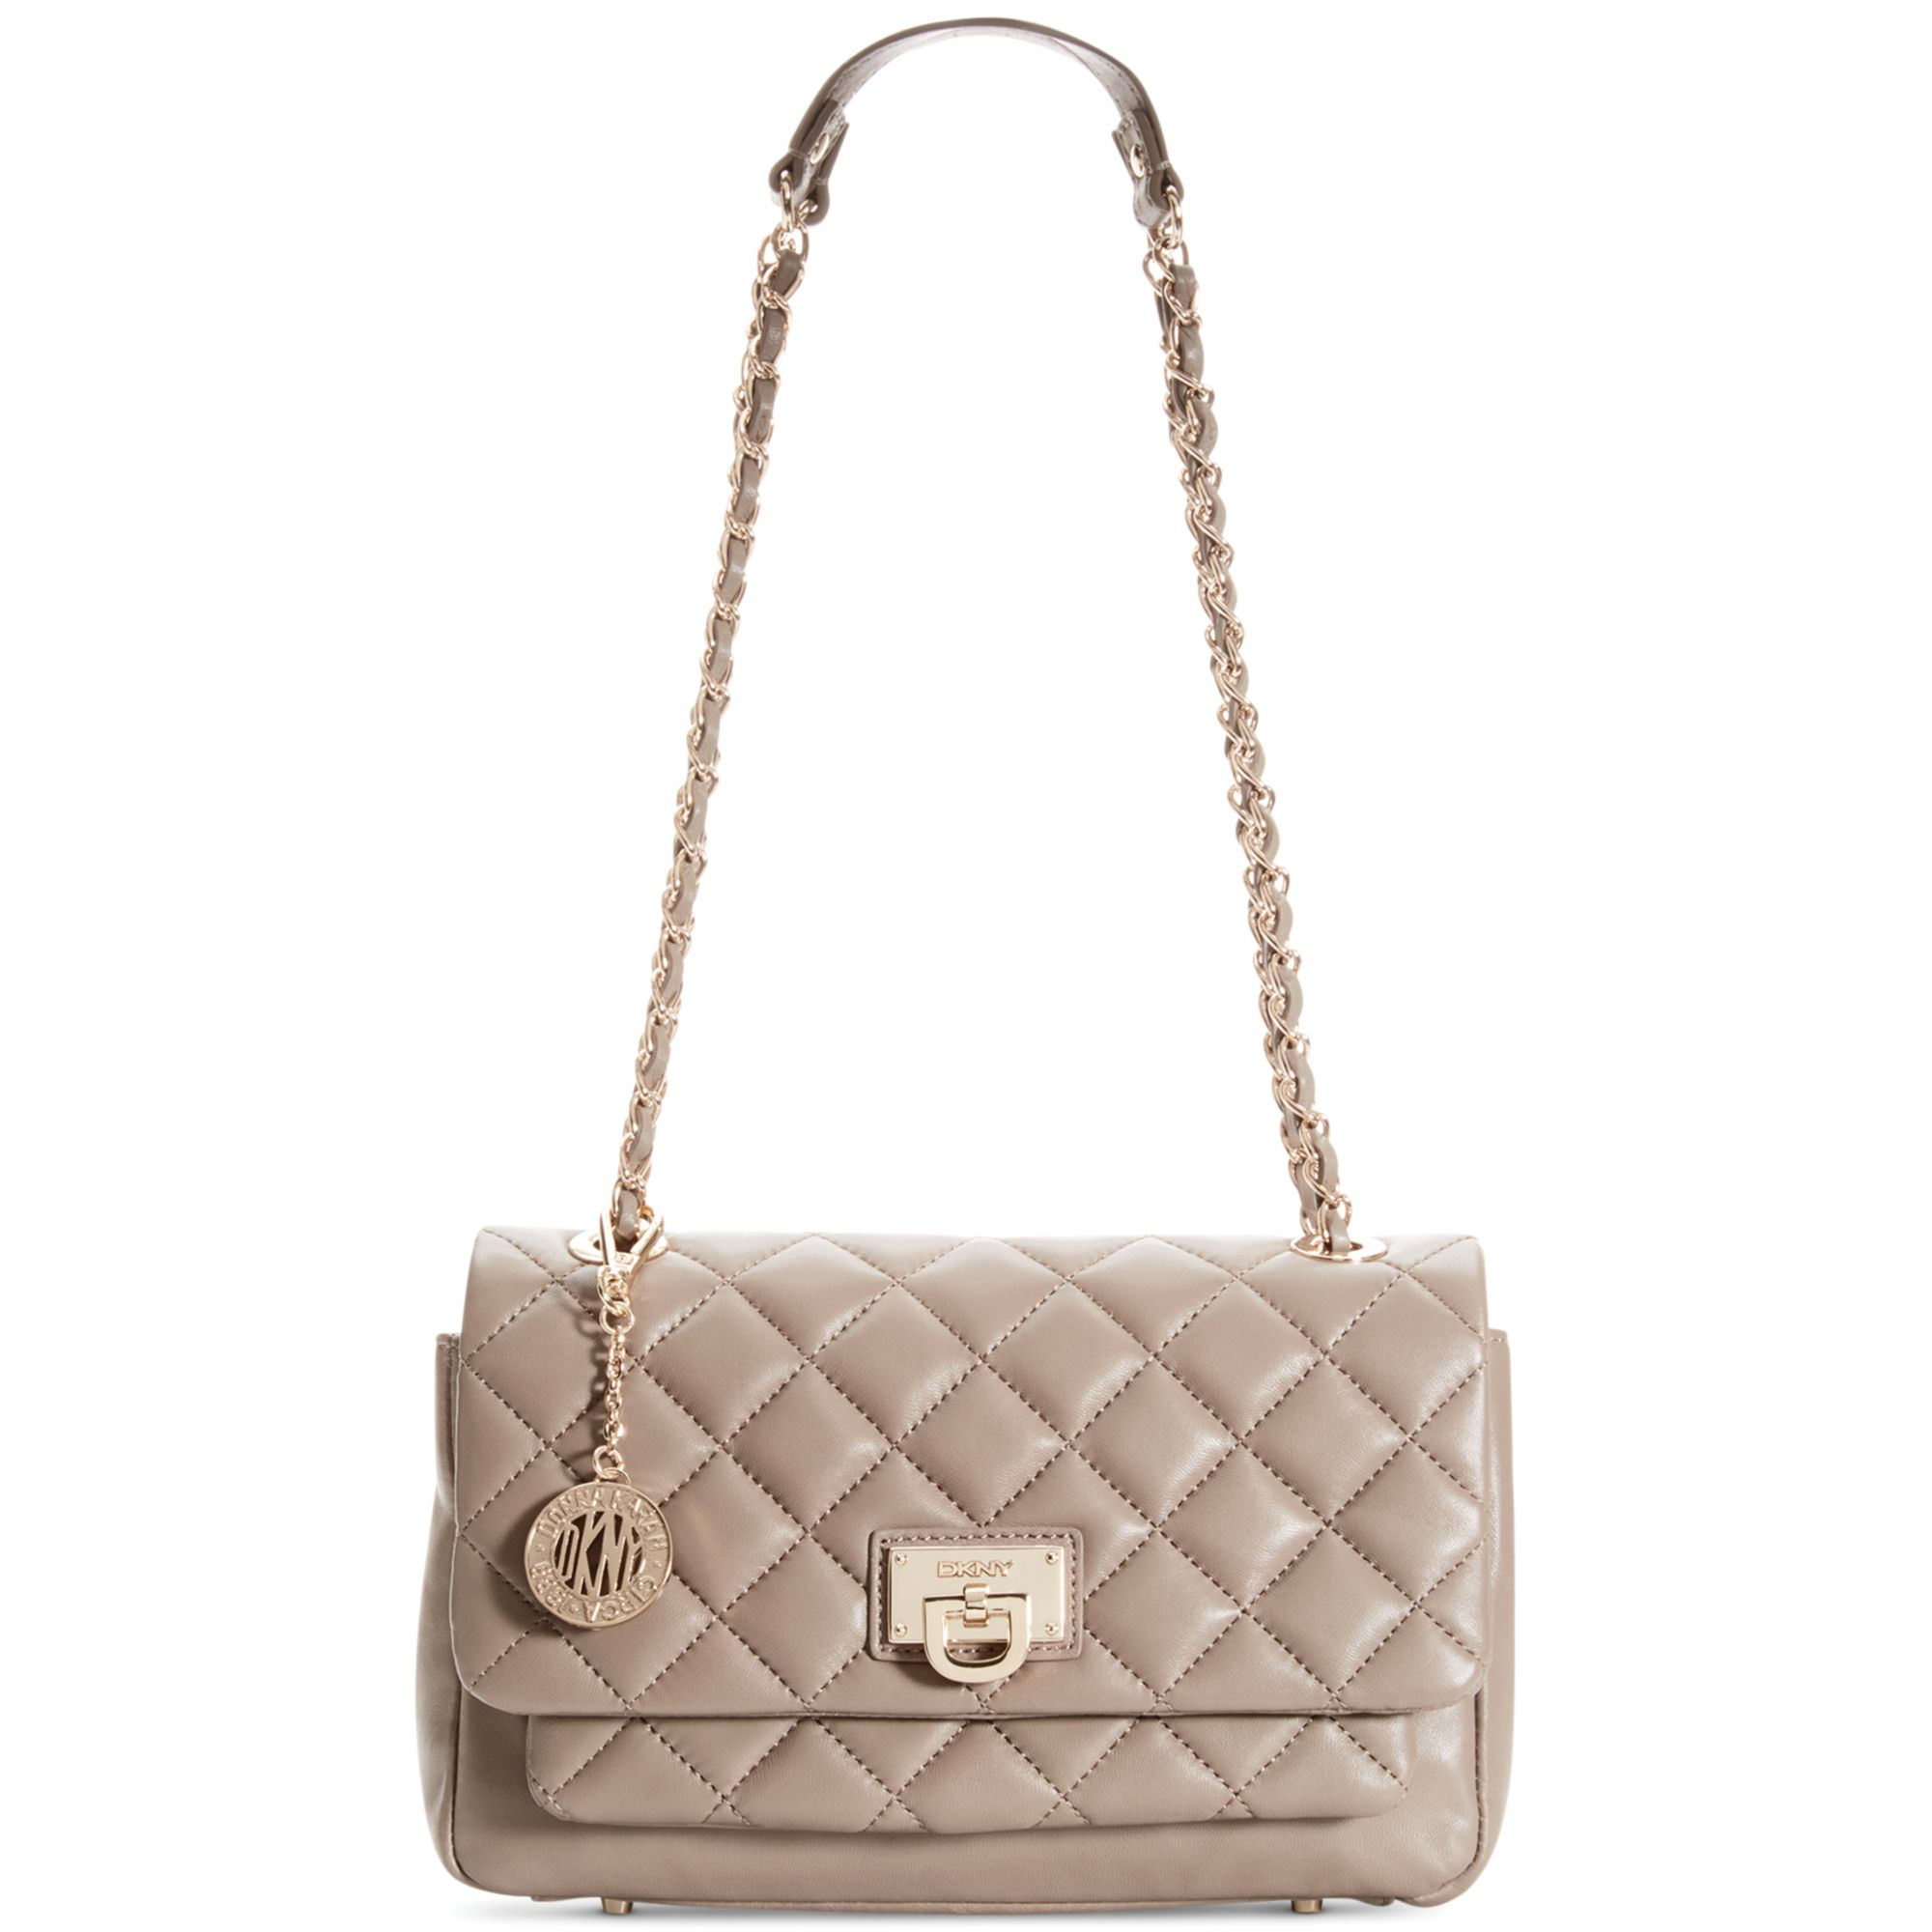 Dkny Gansevoort Quilted Shoulder Bag. : dkny quilted rucksack - Adamdwight.com